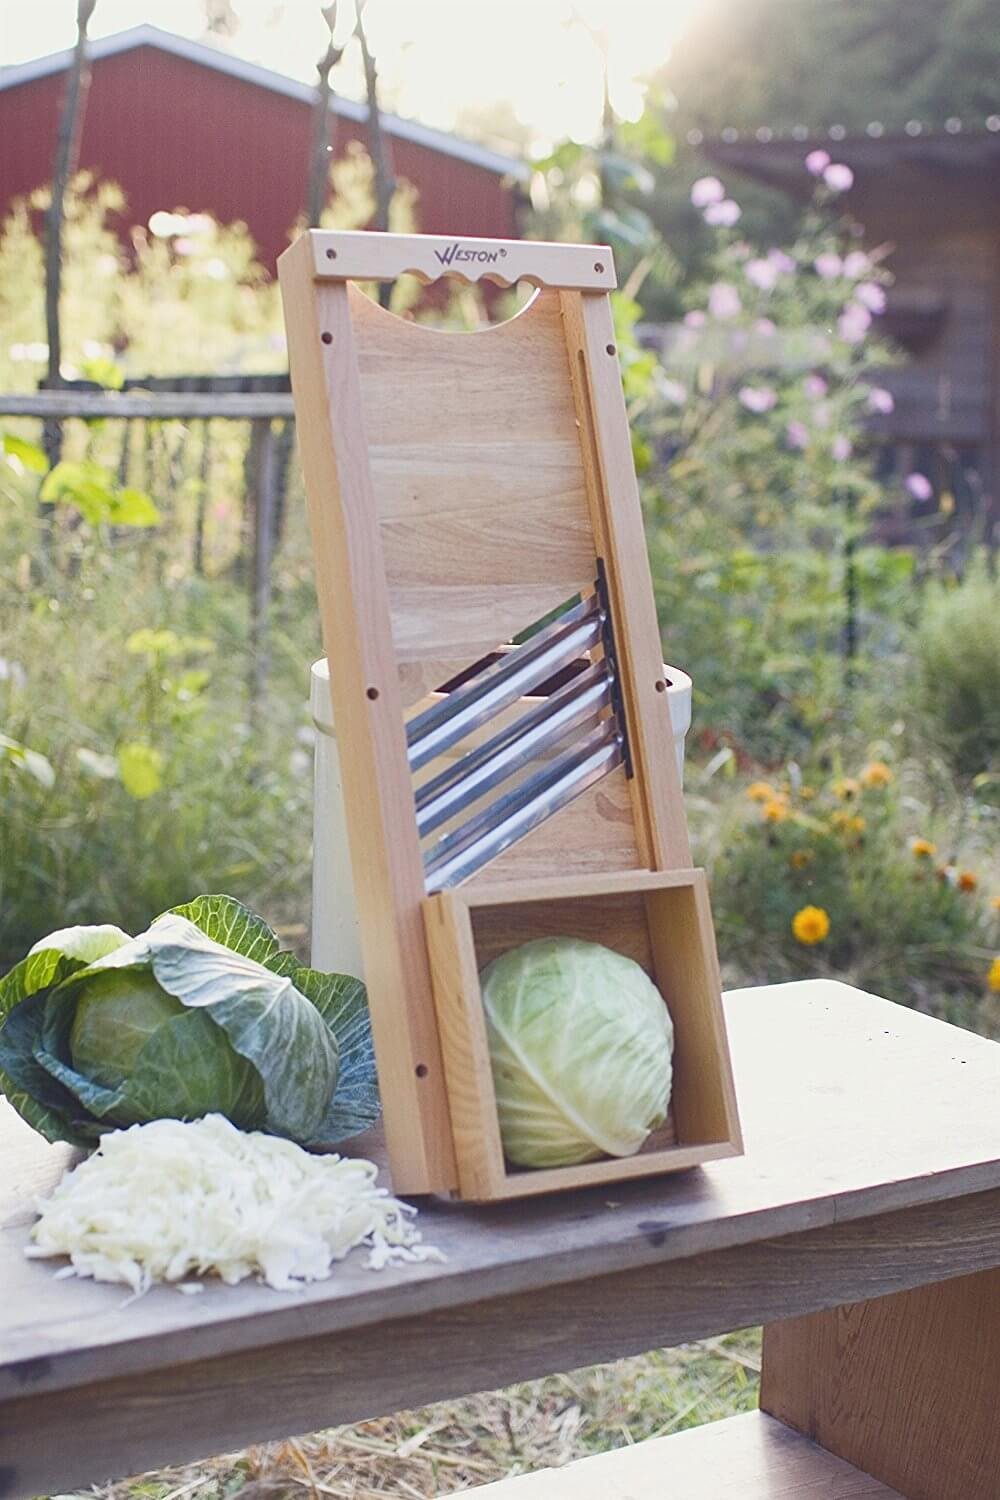 Cabbage Shredder and Vegetable Slicer